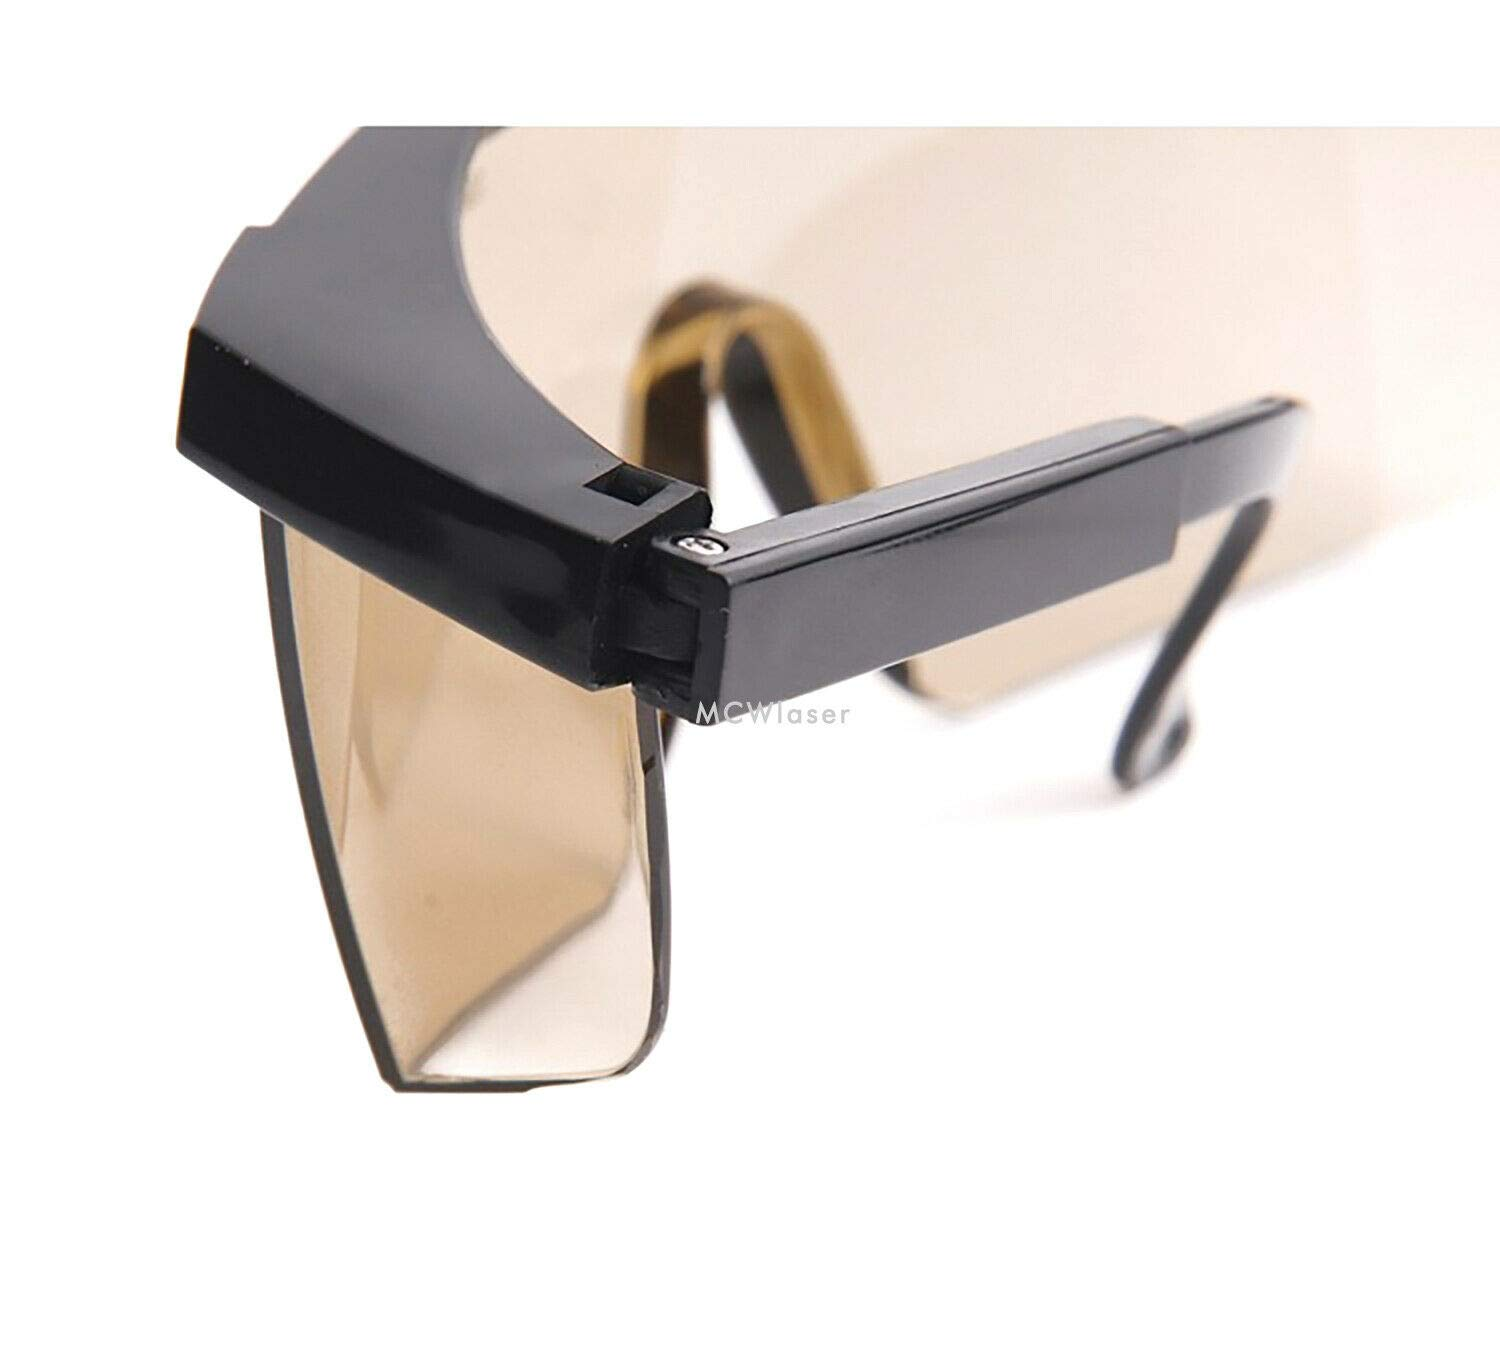 HQ OD5 10600nm 10.6um CO2 Laser Protective Glasses Goggles CE EP-4-5